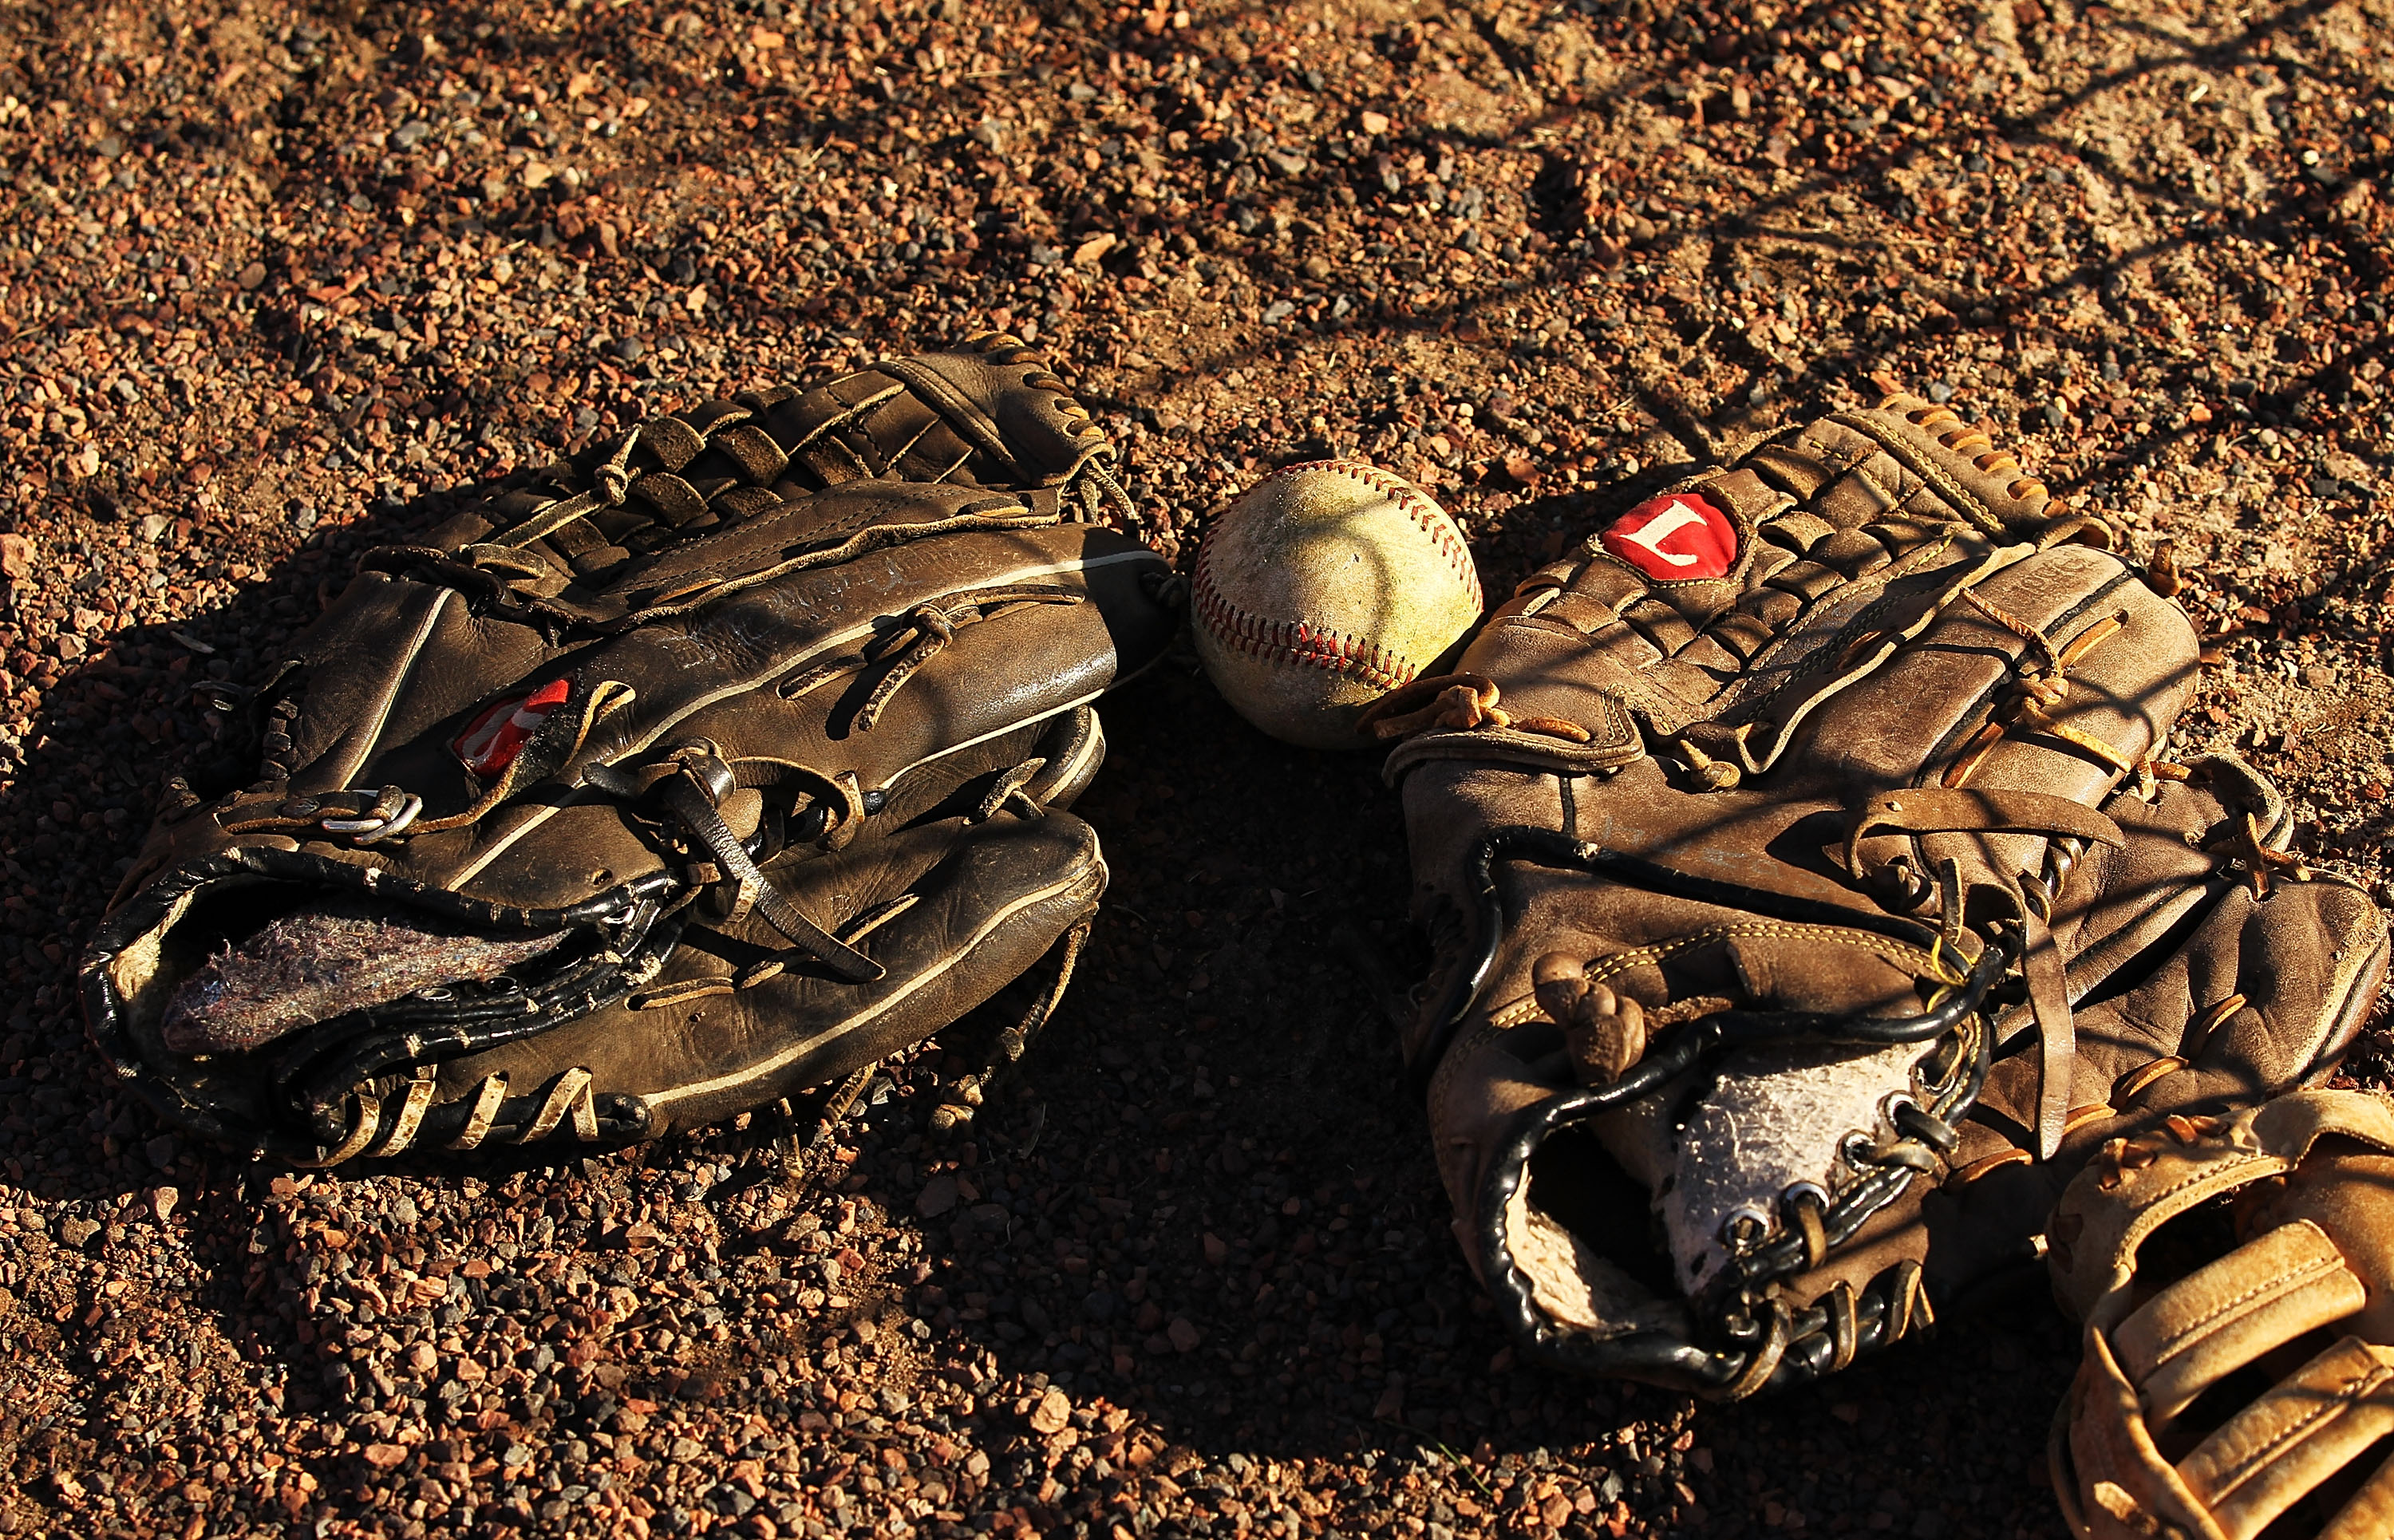 KISSIMMEE, FL - JANUARY 28:  Baseball gloves and a baseball lie in the dirt during the Jim Evans Academy of Professional Umpiring on January 28, 2011 at the Houston Astros Spring Training Complex  in Kissimmee, Florida.  Jim Evans was a Major League Umpir